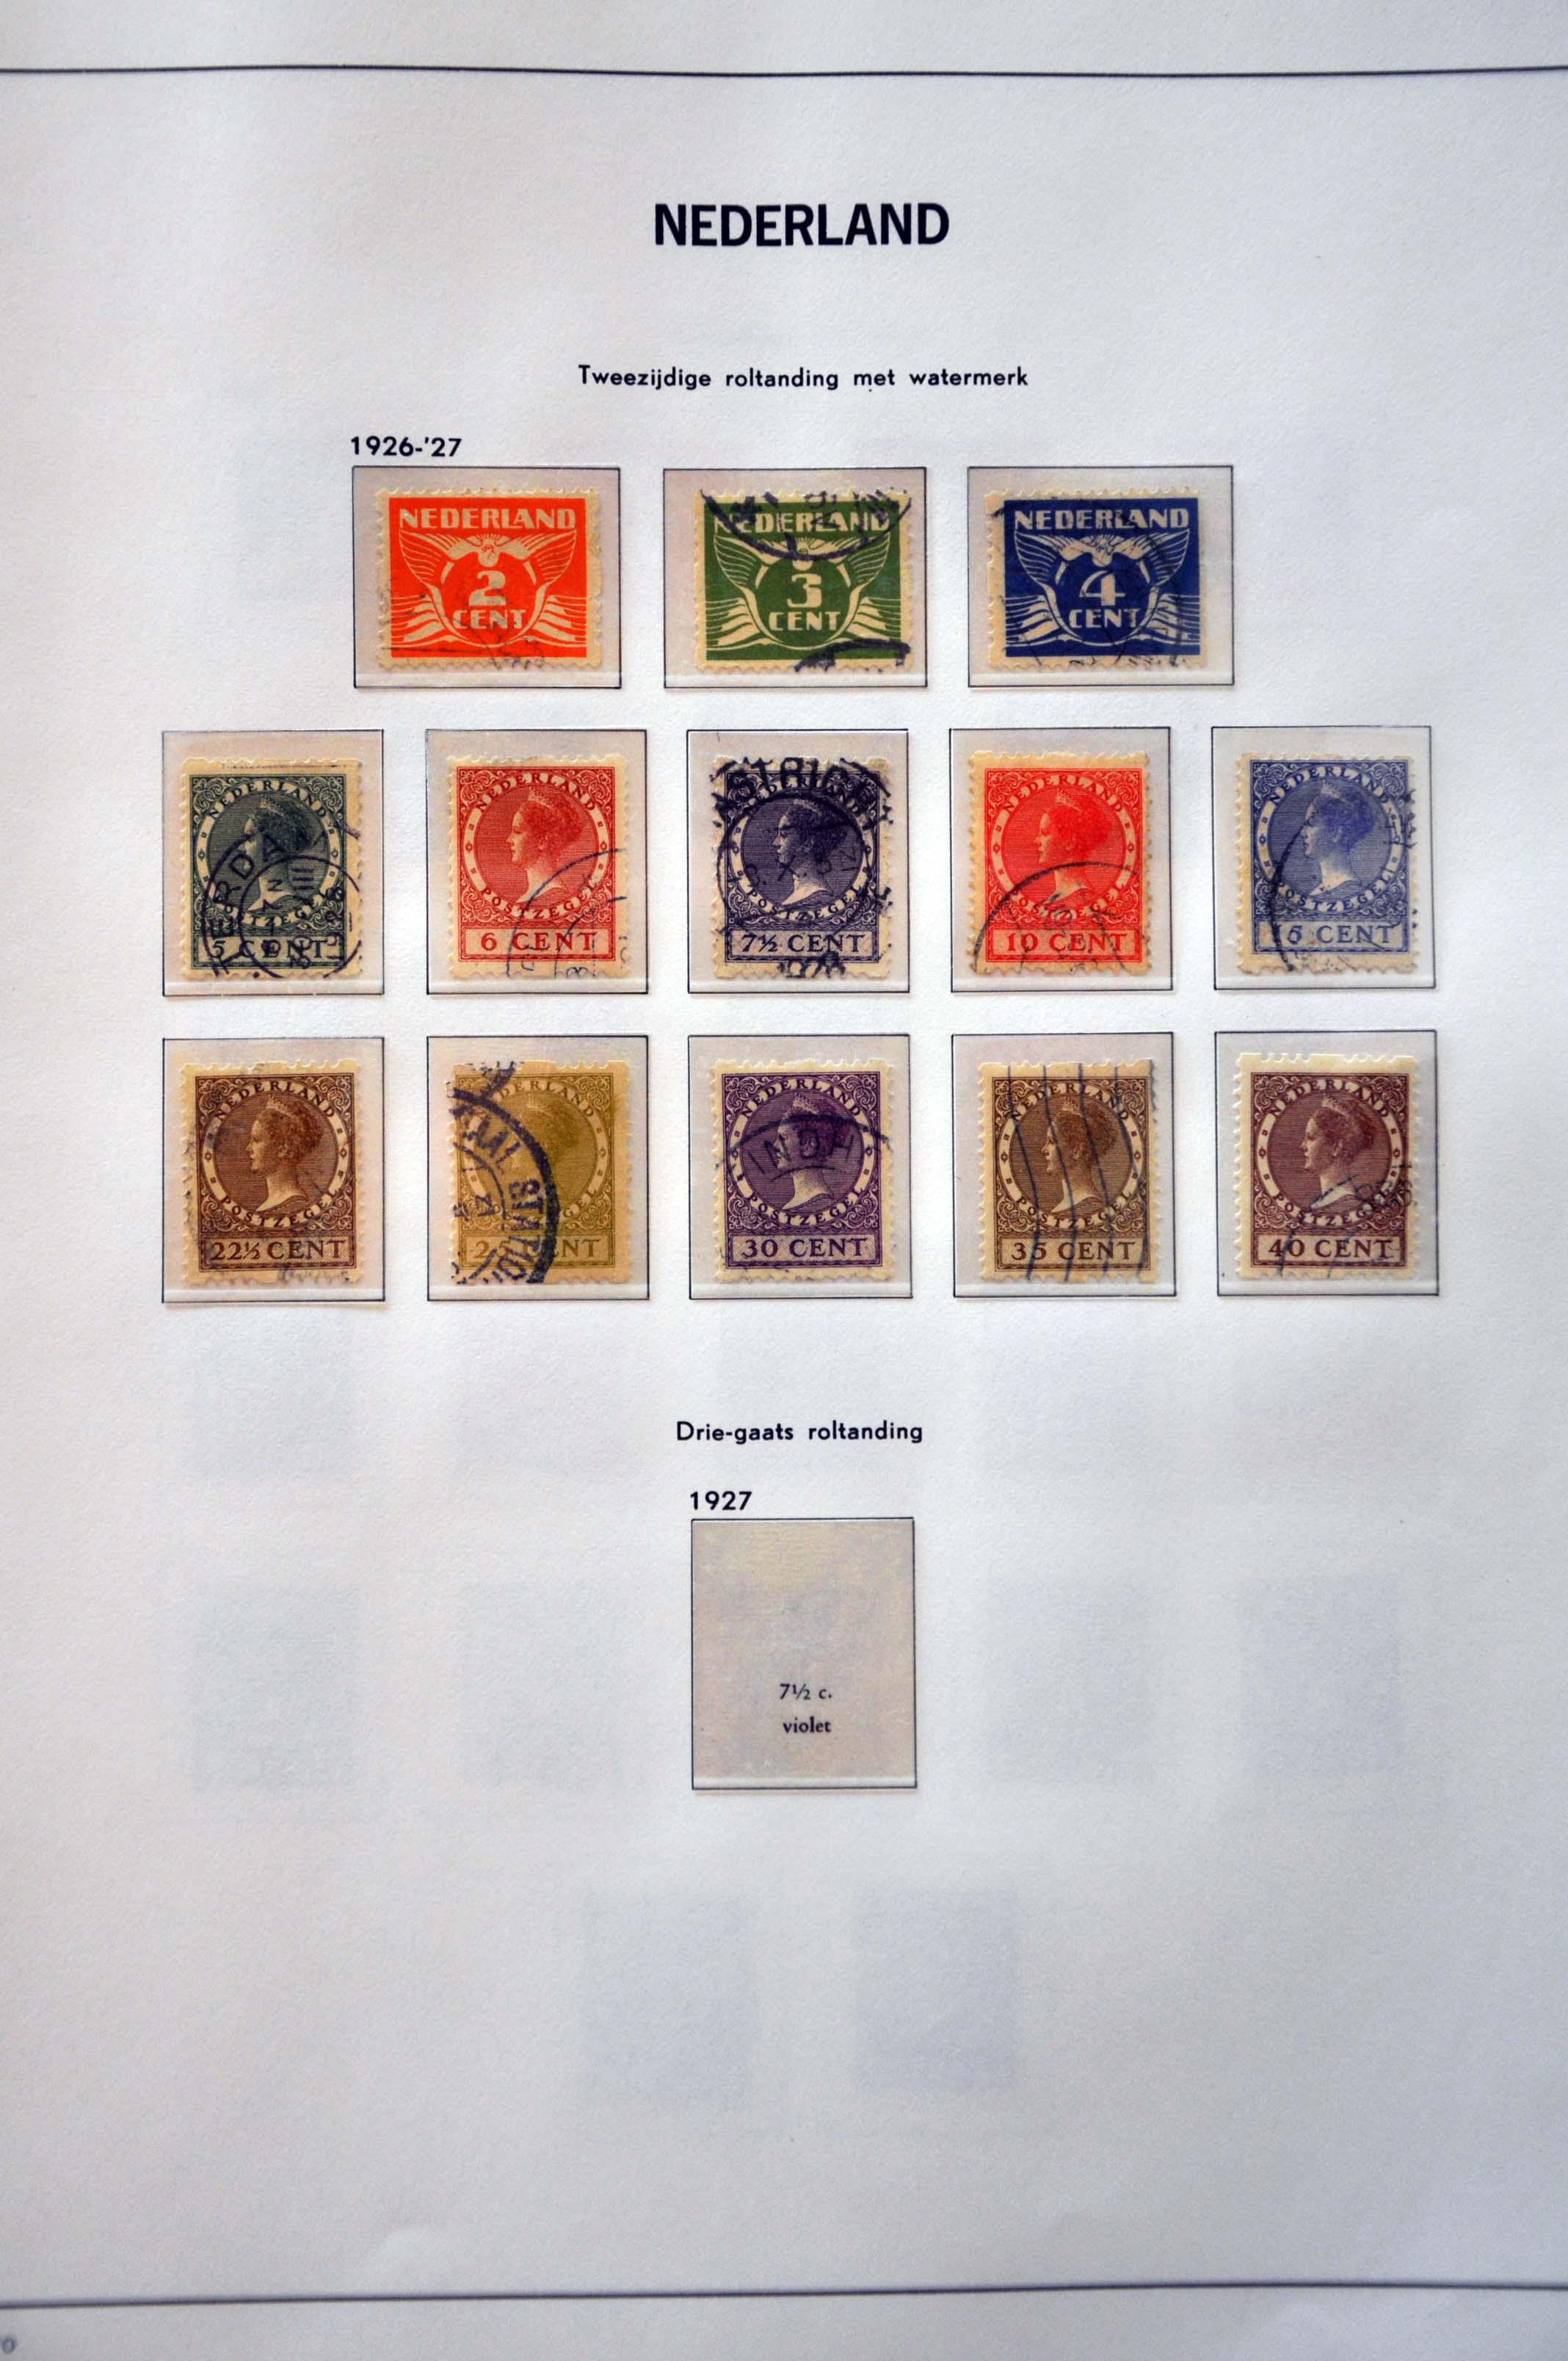 Lot 1634 - Netherlands and former colonies Netherlands -  Corinphila Veilingen Auction 250-253 - Day 2 - Coins, medals, Netherlands and former colonies